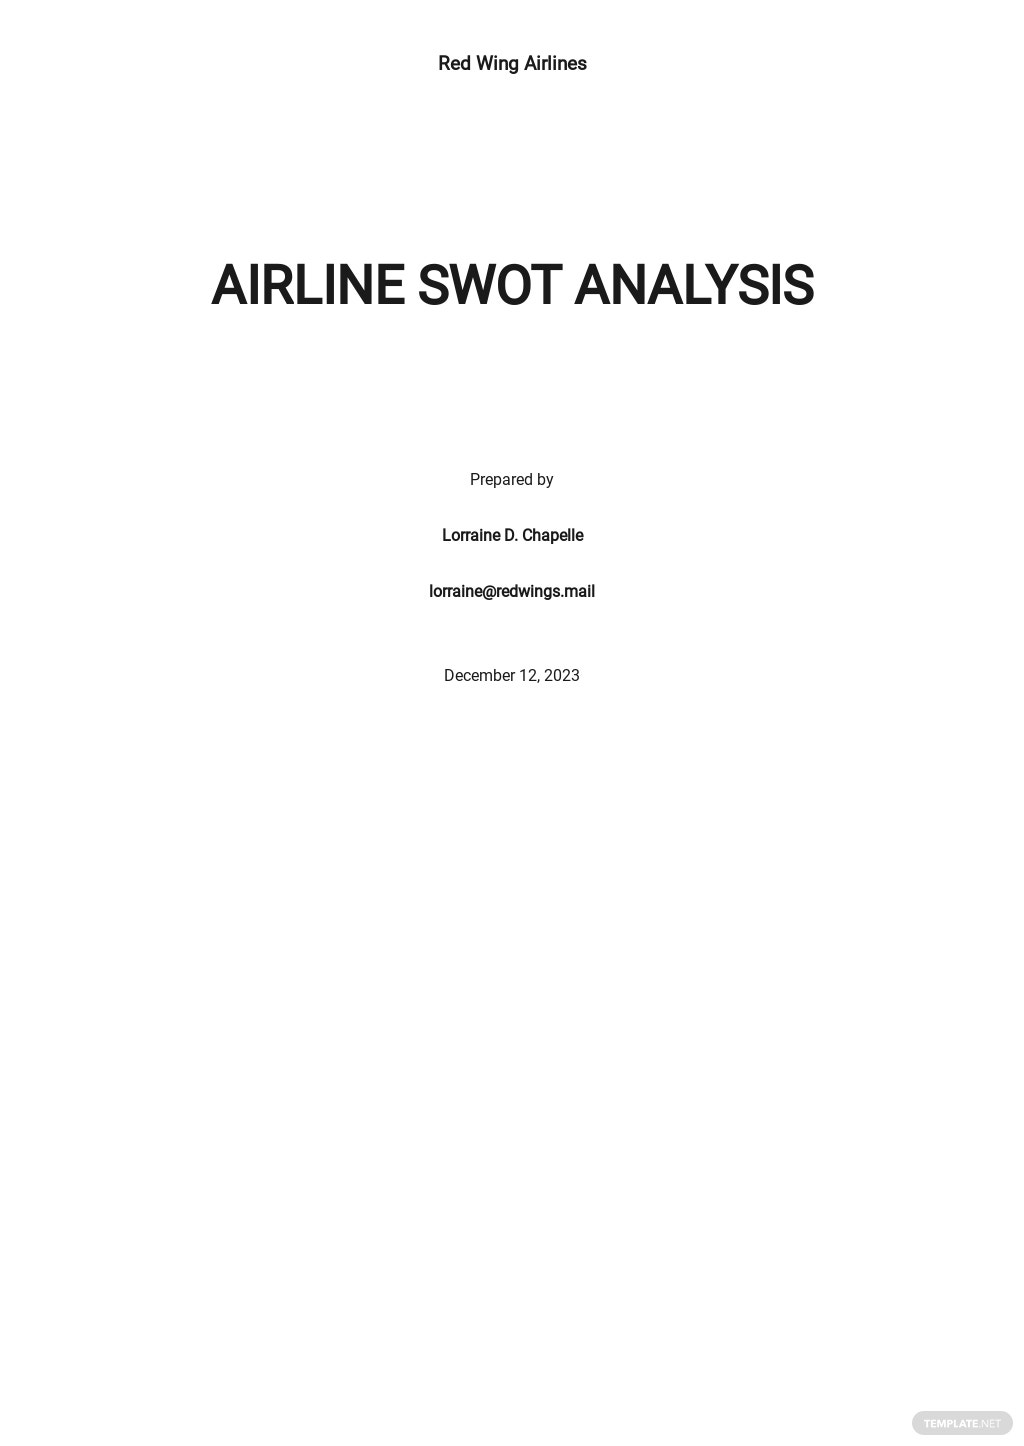 Airline SWOT Analysis Template